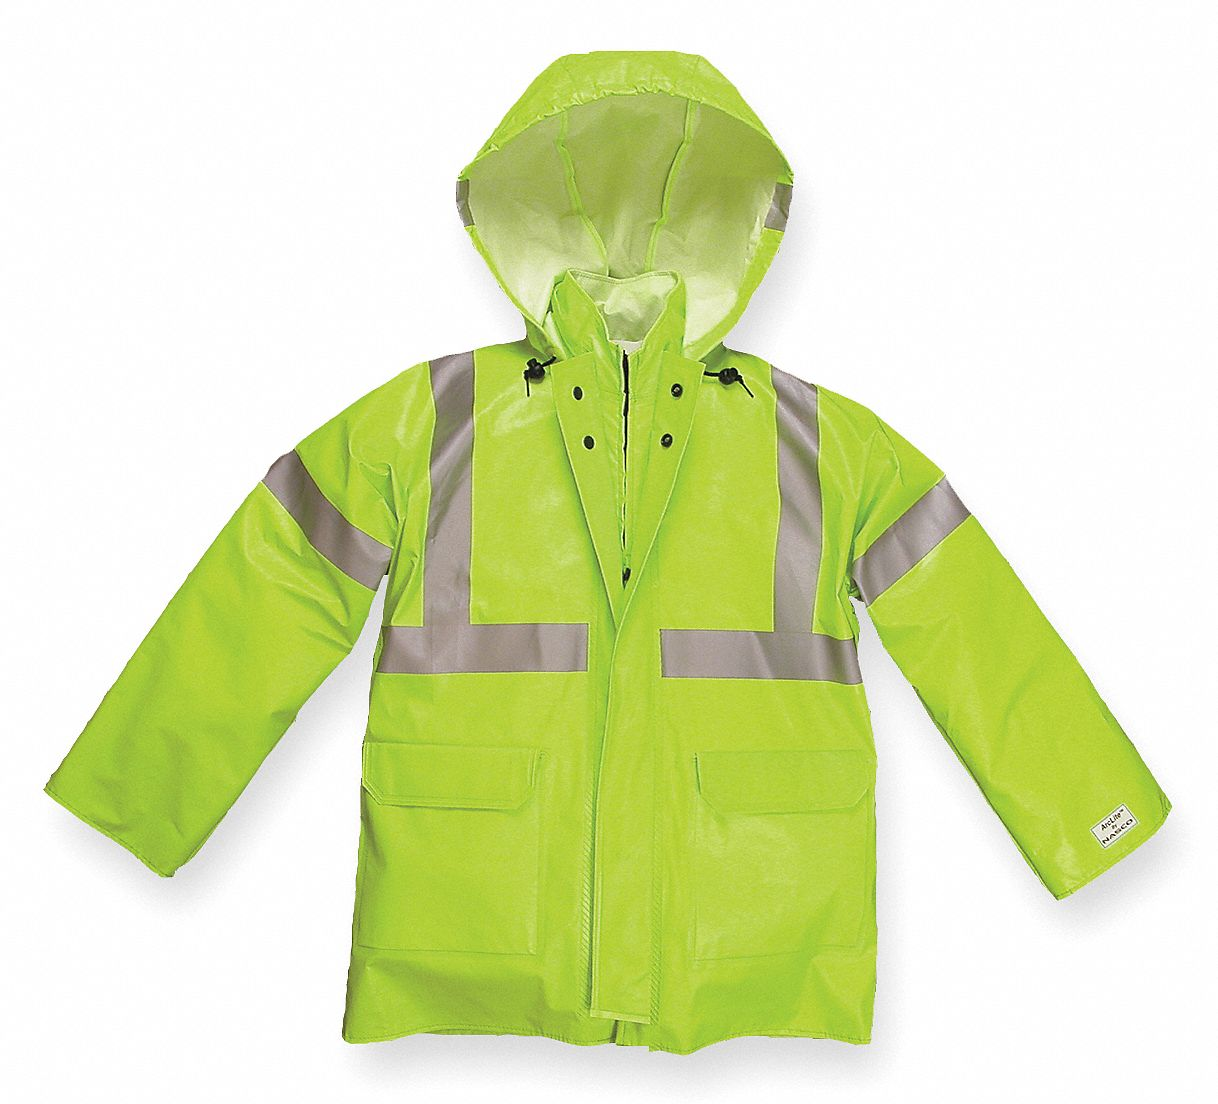 Arc Flash Rain Jacket, PPE Category: 1, High Visibility: Yes, Kevlar(R), Nomex(R) PVC, XL, Yellow/Gr